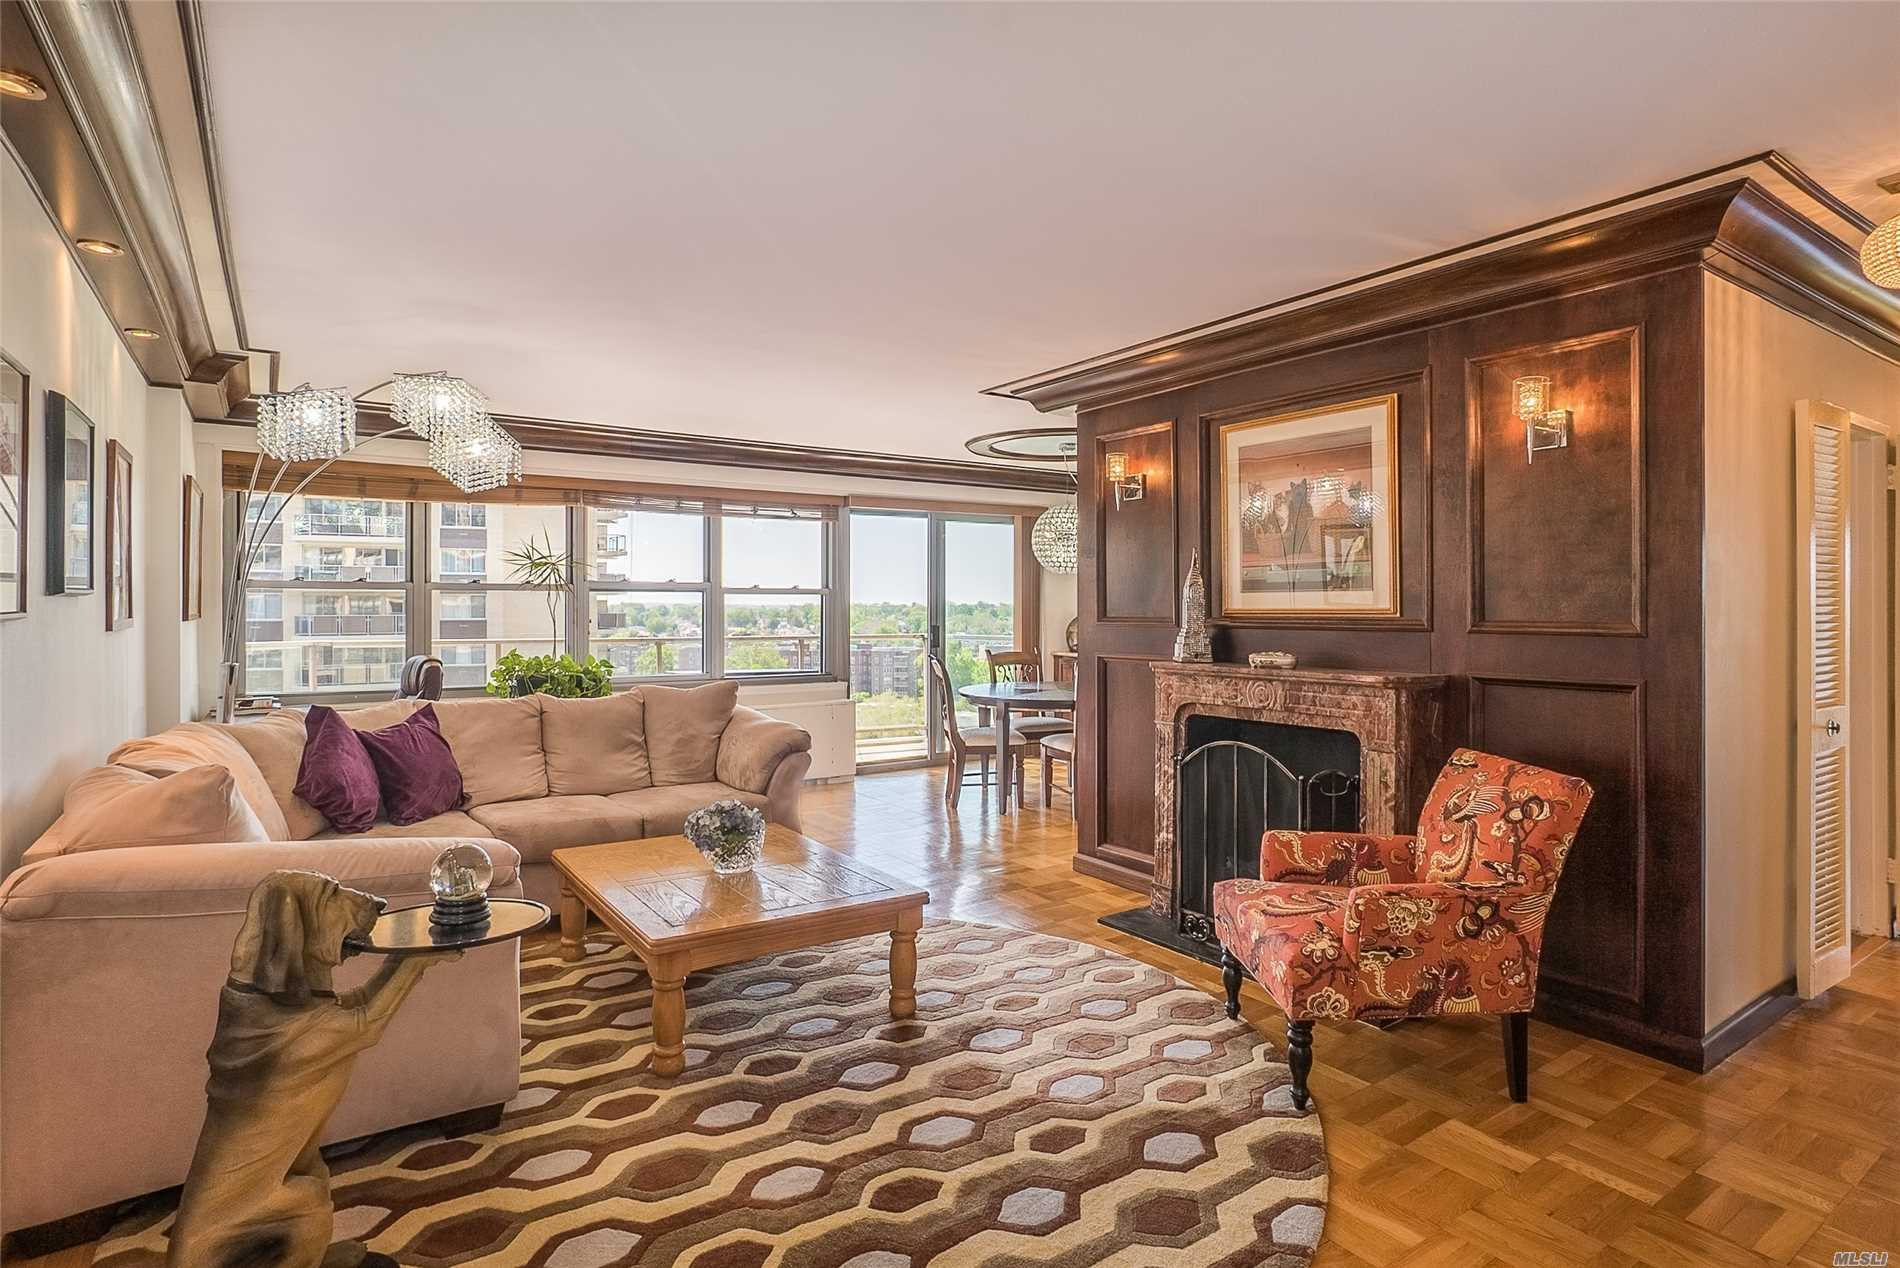 New to Market. BREATHTAKING VIEWS...2 Bed Deluxe with 2 balconies with 2 AMAZING VIEWS!The long Island Sound and the NYC skyline! EVERYTHING NEW AND IT IS PRICED TO SELL! view this beautiful deluxe unit on a high floor! 24 hour security, doorman , concierge, pool club, gym, tennis, salon, deli, dry cleaners, garage parking and all of this and you can walk to the Bayterrace shopping, buses local and express to NYC and 22 min on the LIRR!